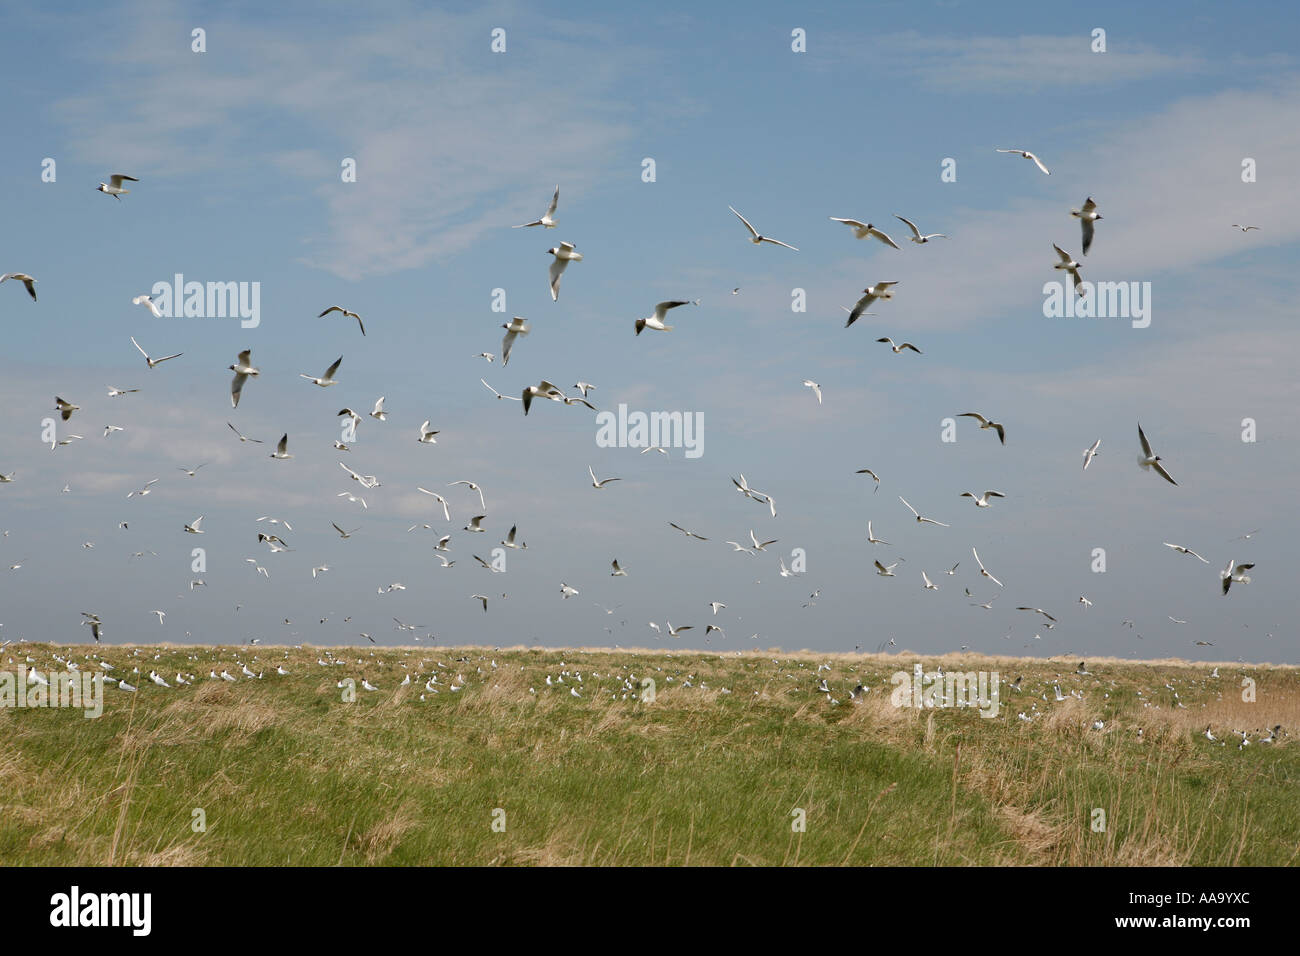 Huge flog of gulls at Griend, Holland - Stock Image